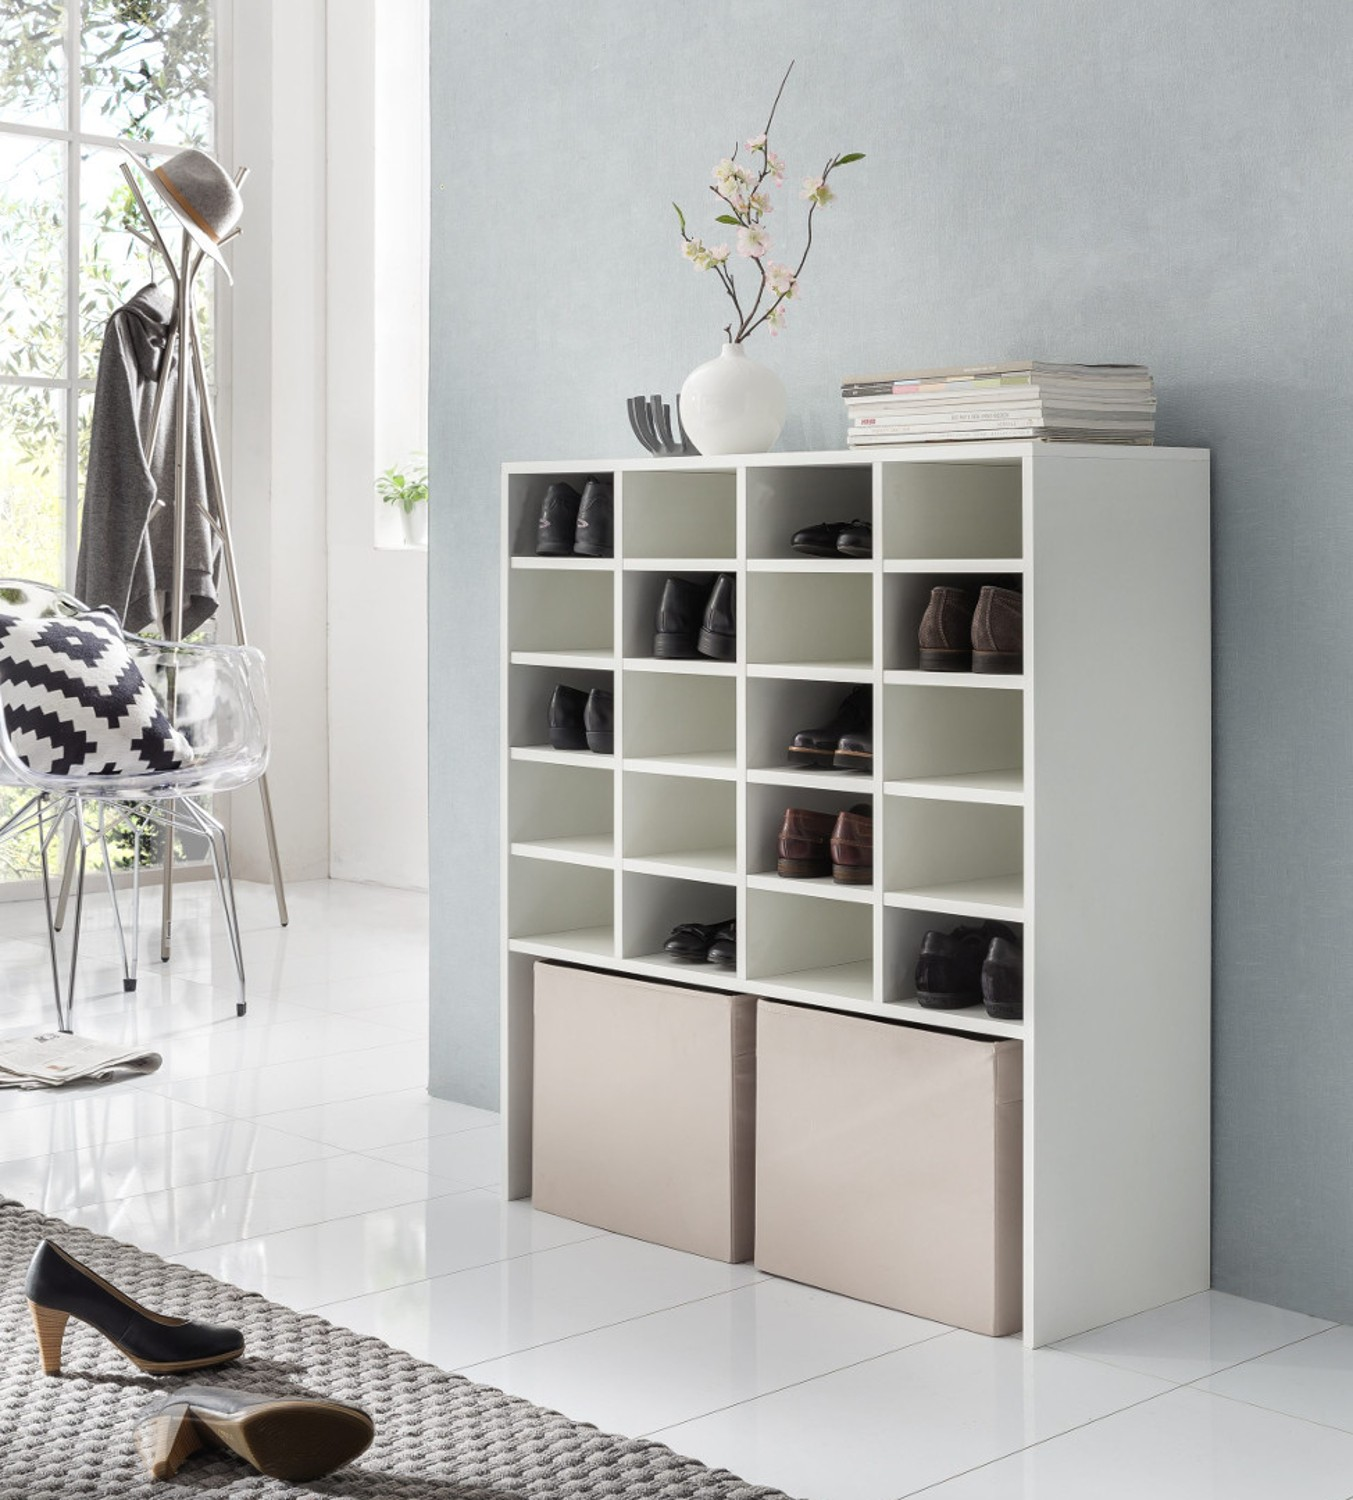 schuh regal emmy f r bis zu 20 paar schuhe wei wohnen. Black Bedroom Furniture Sets. Home Design Ideas